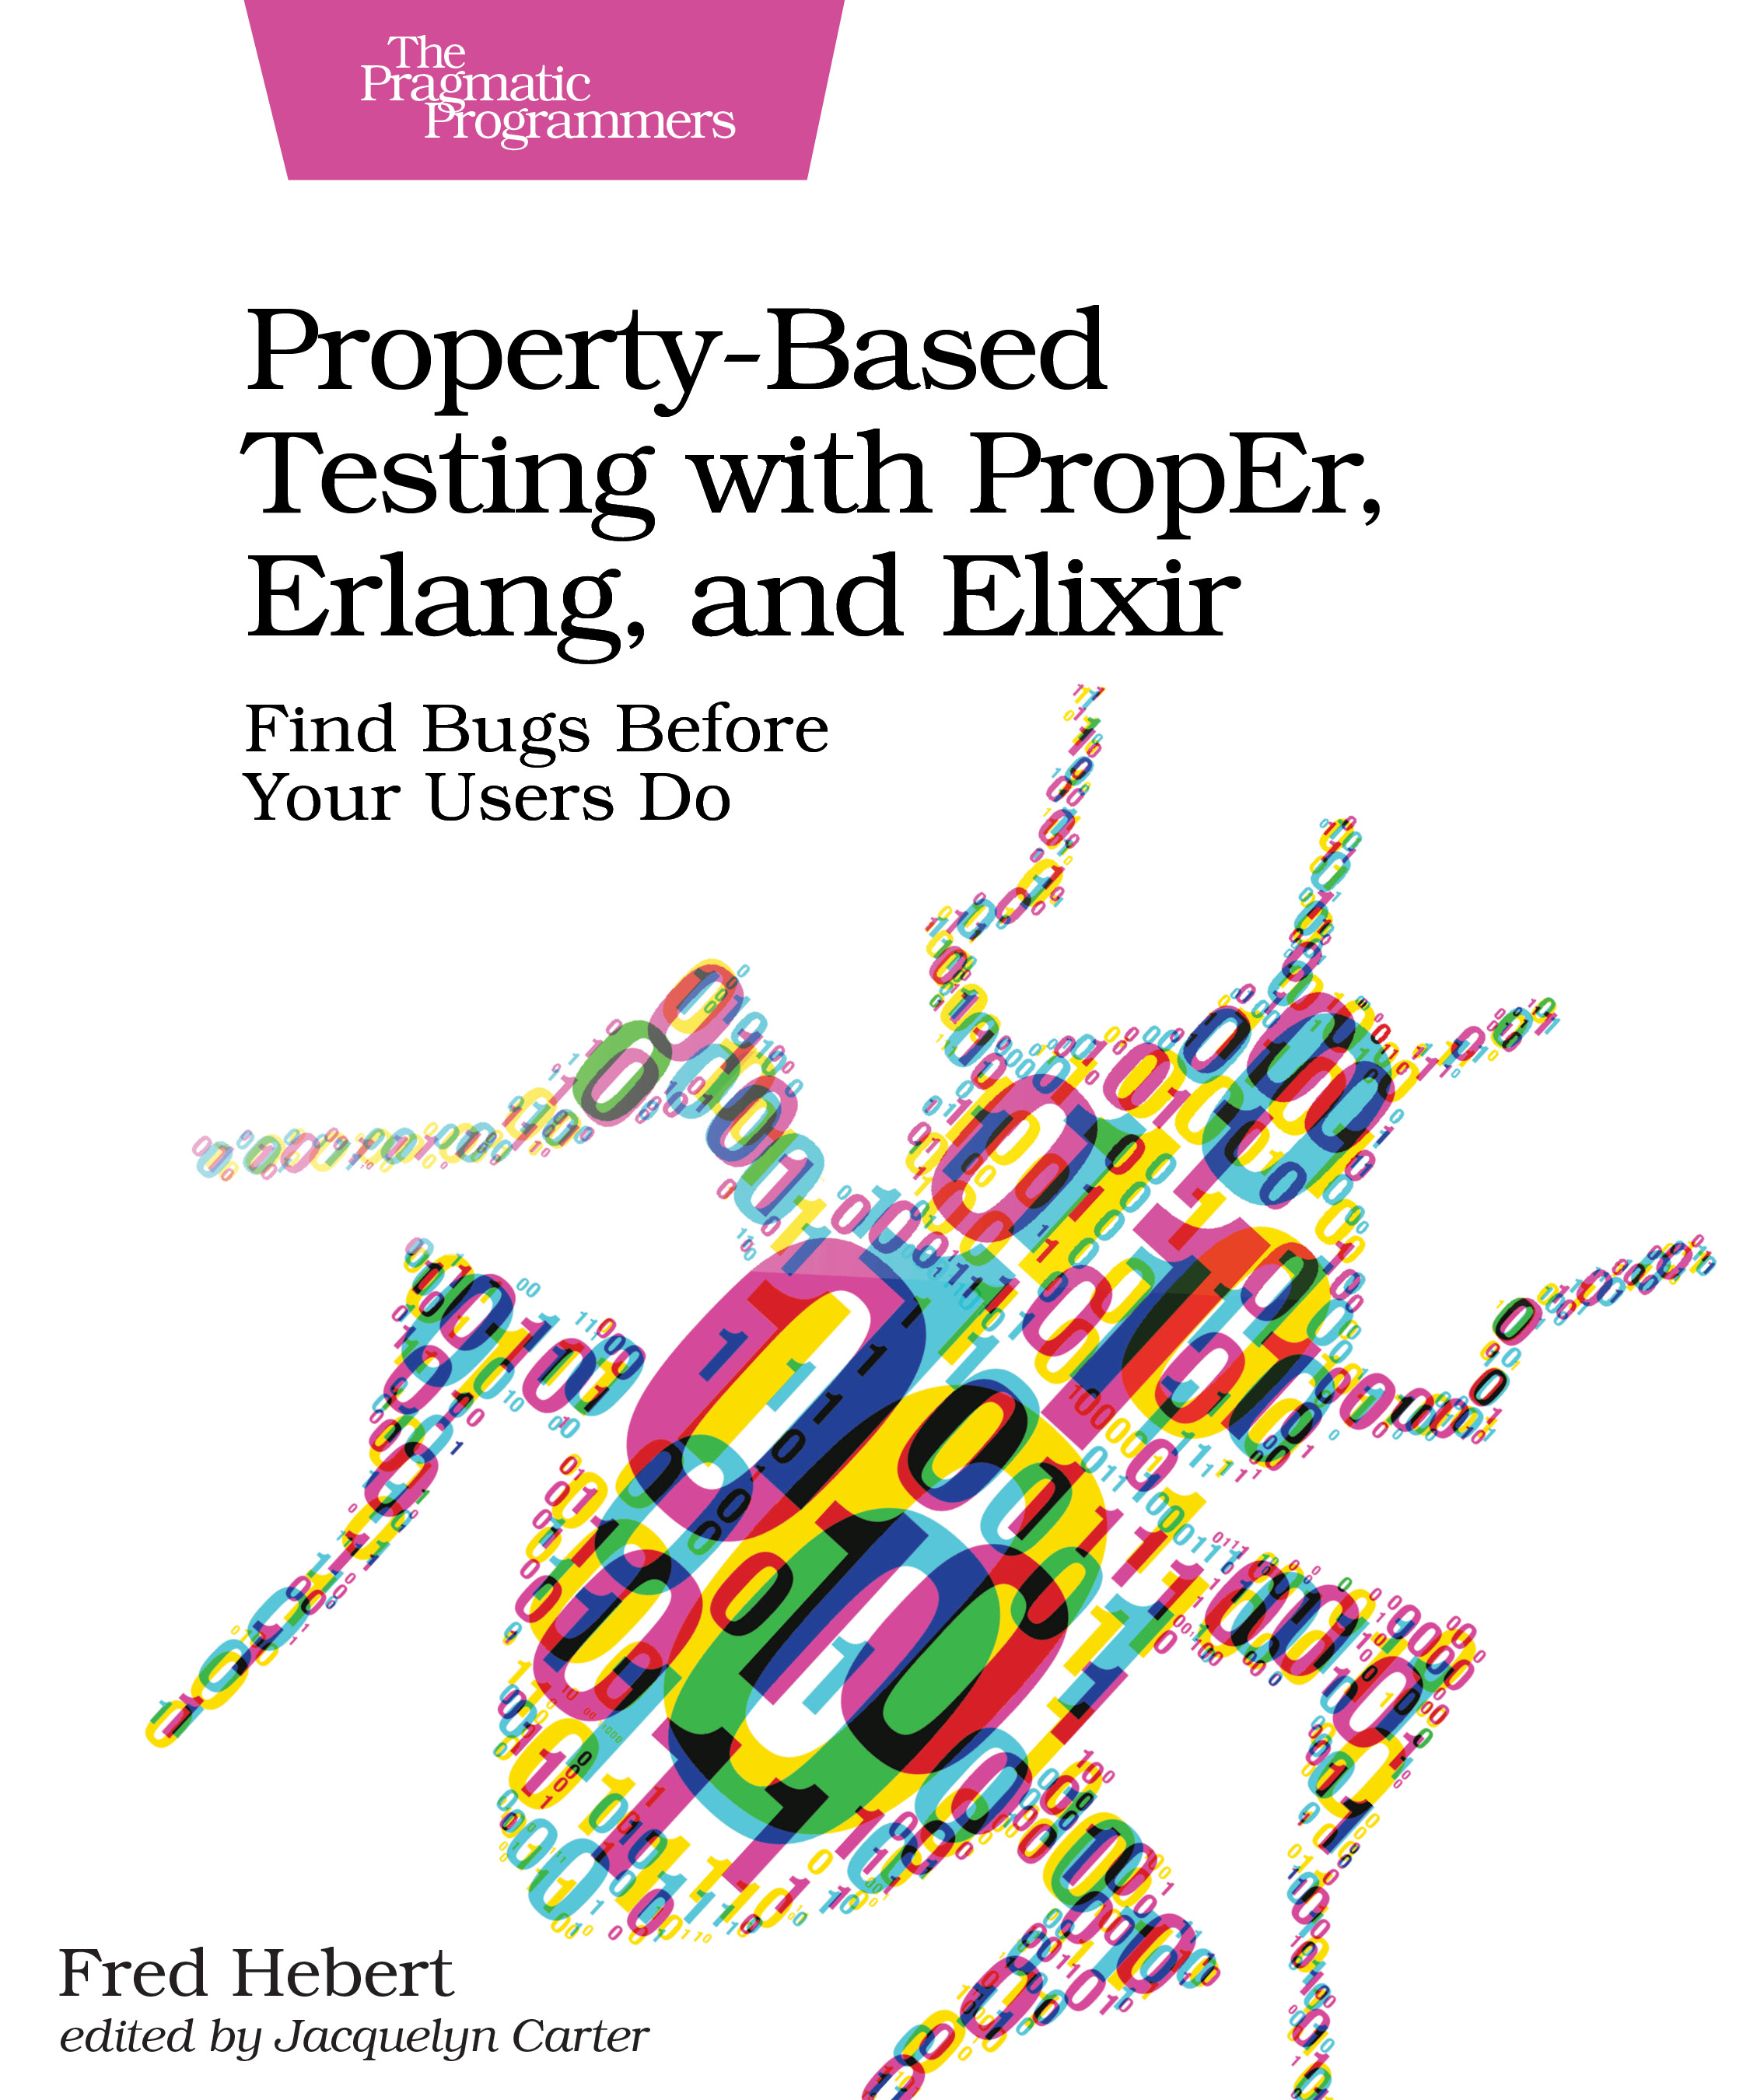 Property-Based Testing with PropEr, Erlang, and Elixir